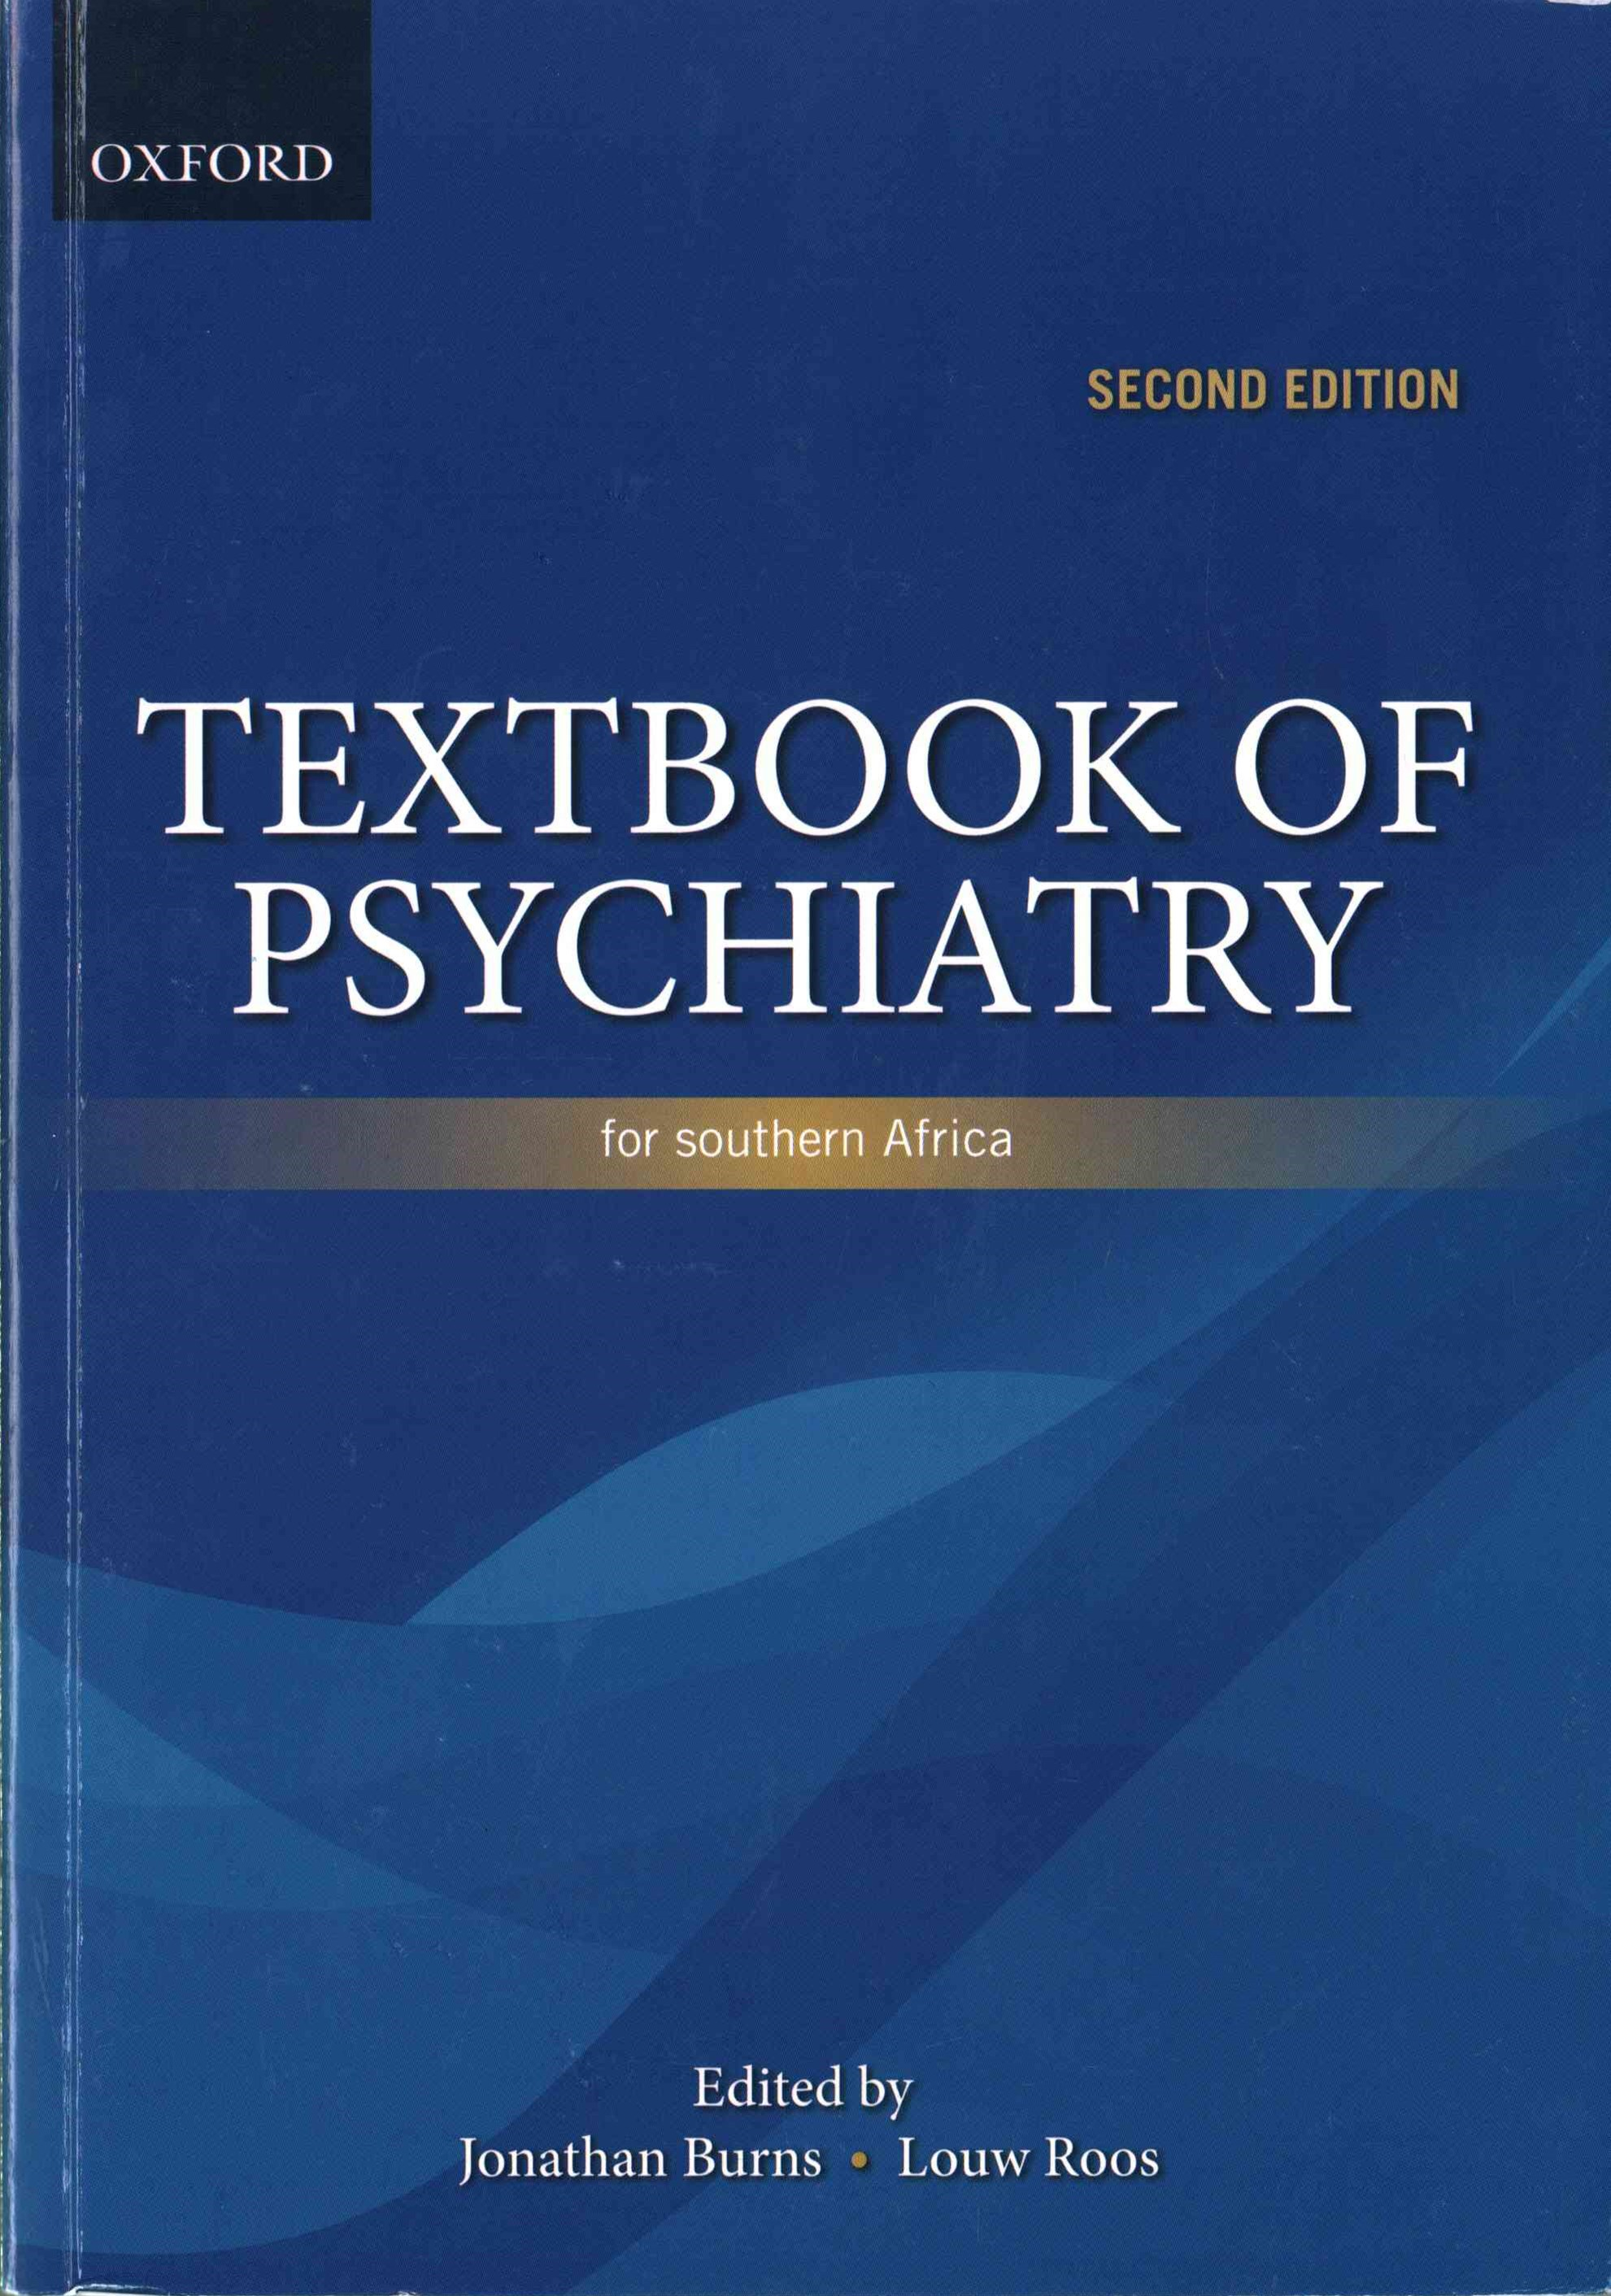 Textbook of Psychiatry for Southern Africa